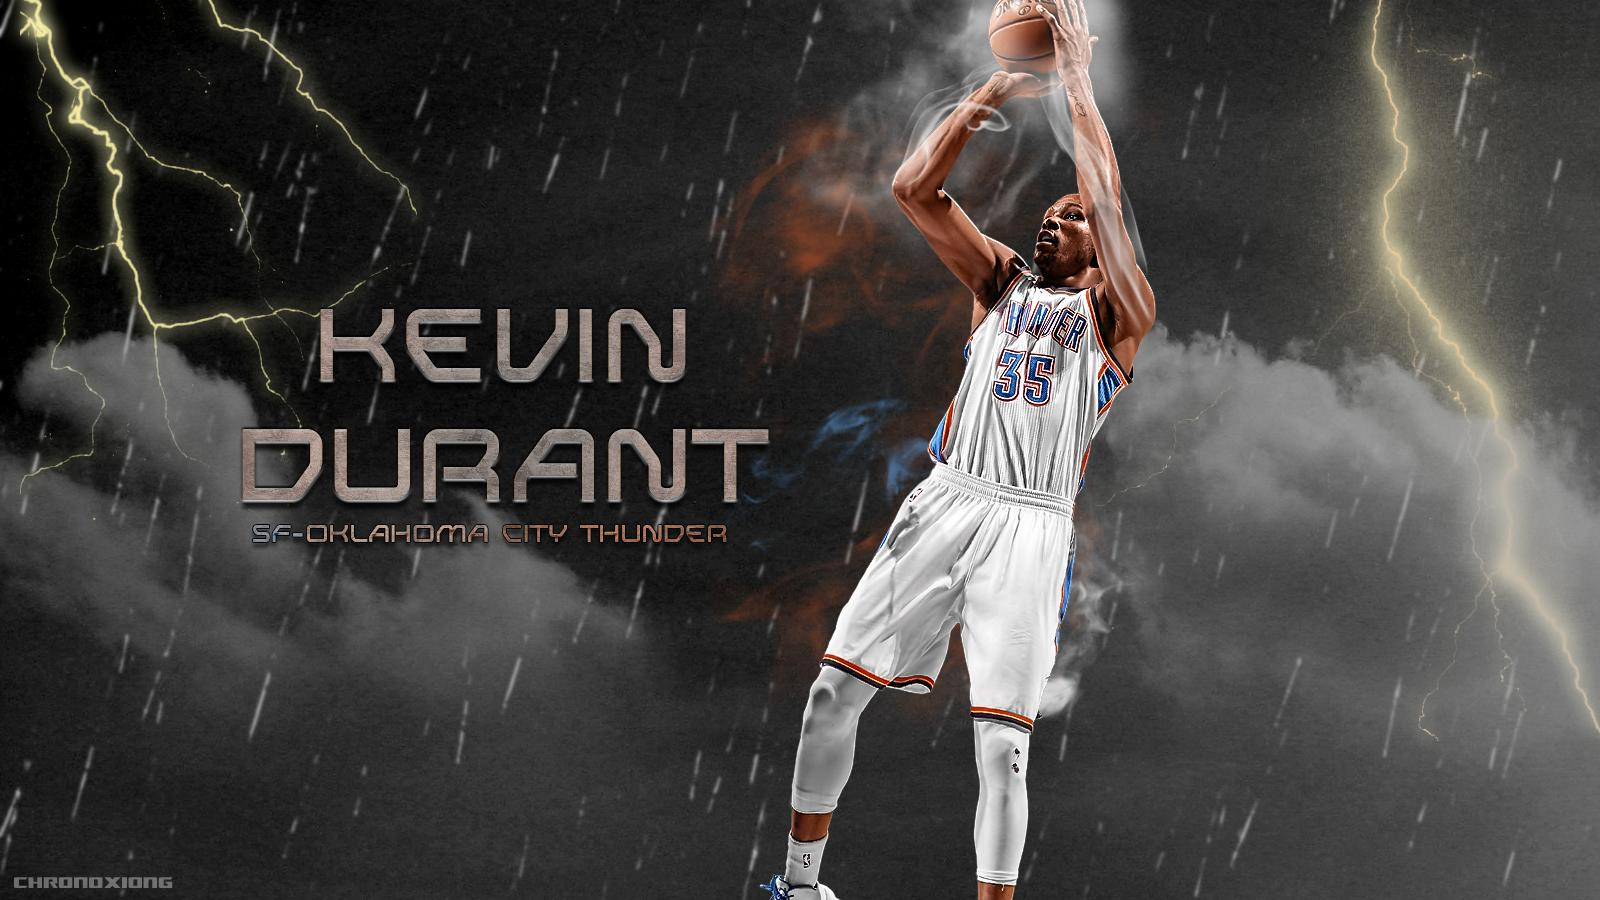 Kevin Durant Wallpapers HD 2015 1600x900